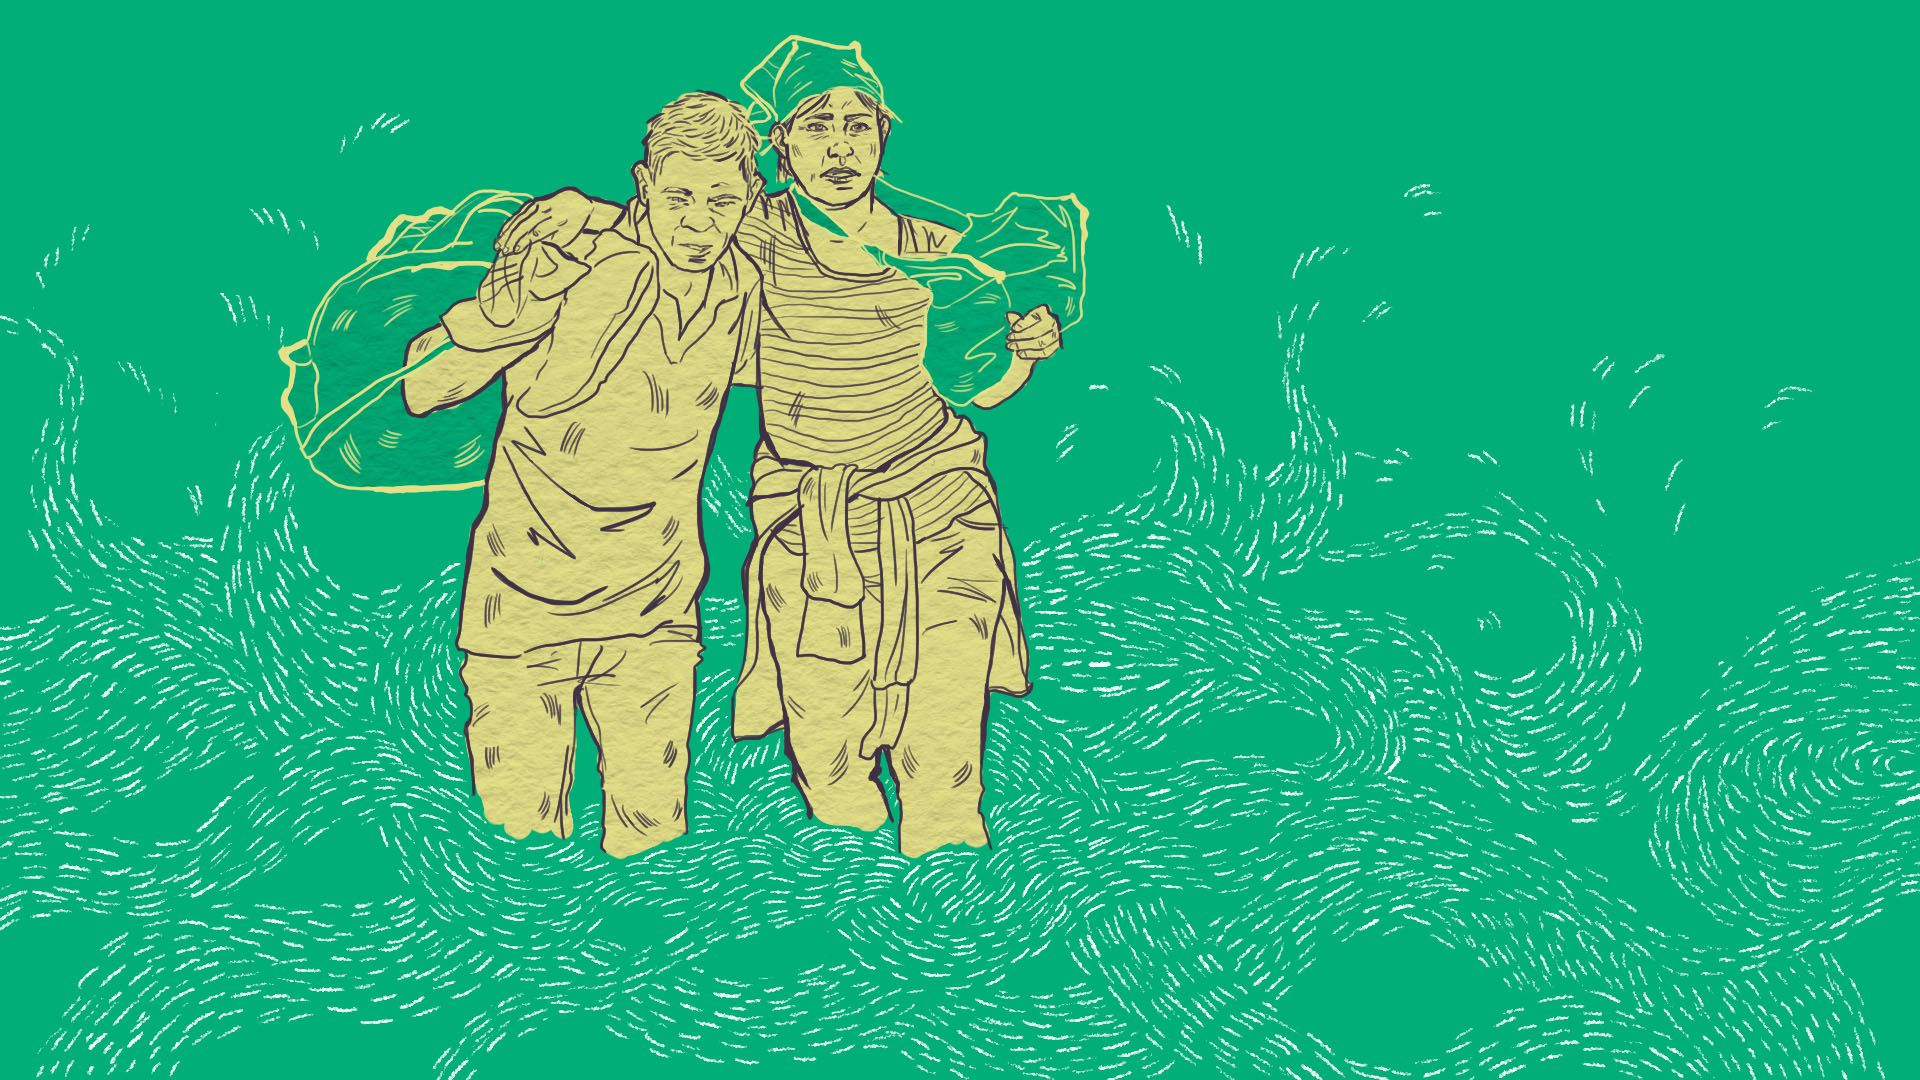 Illustration of refugees crossing a river